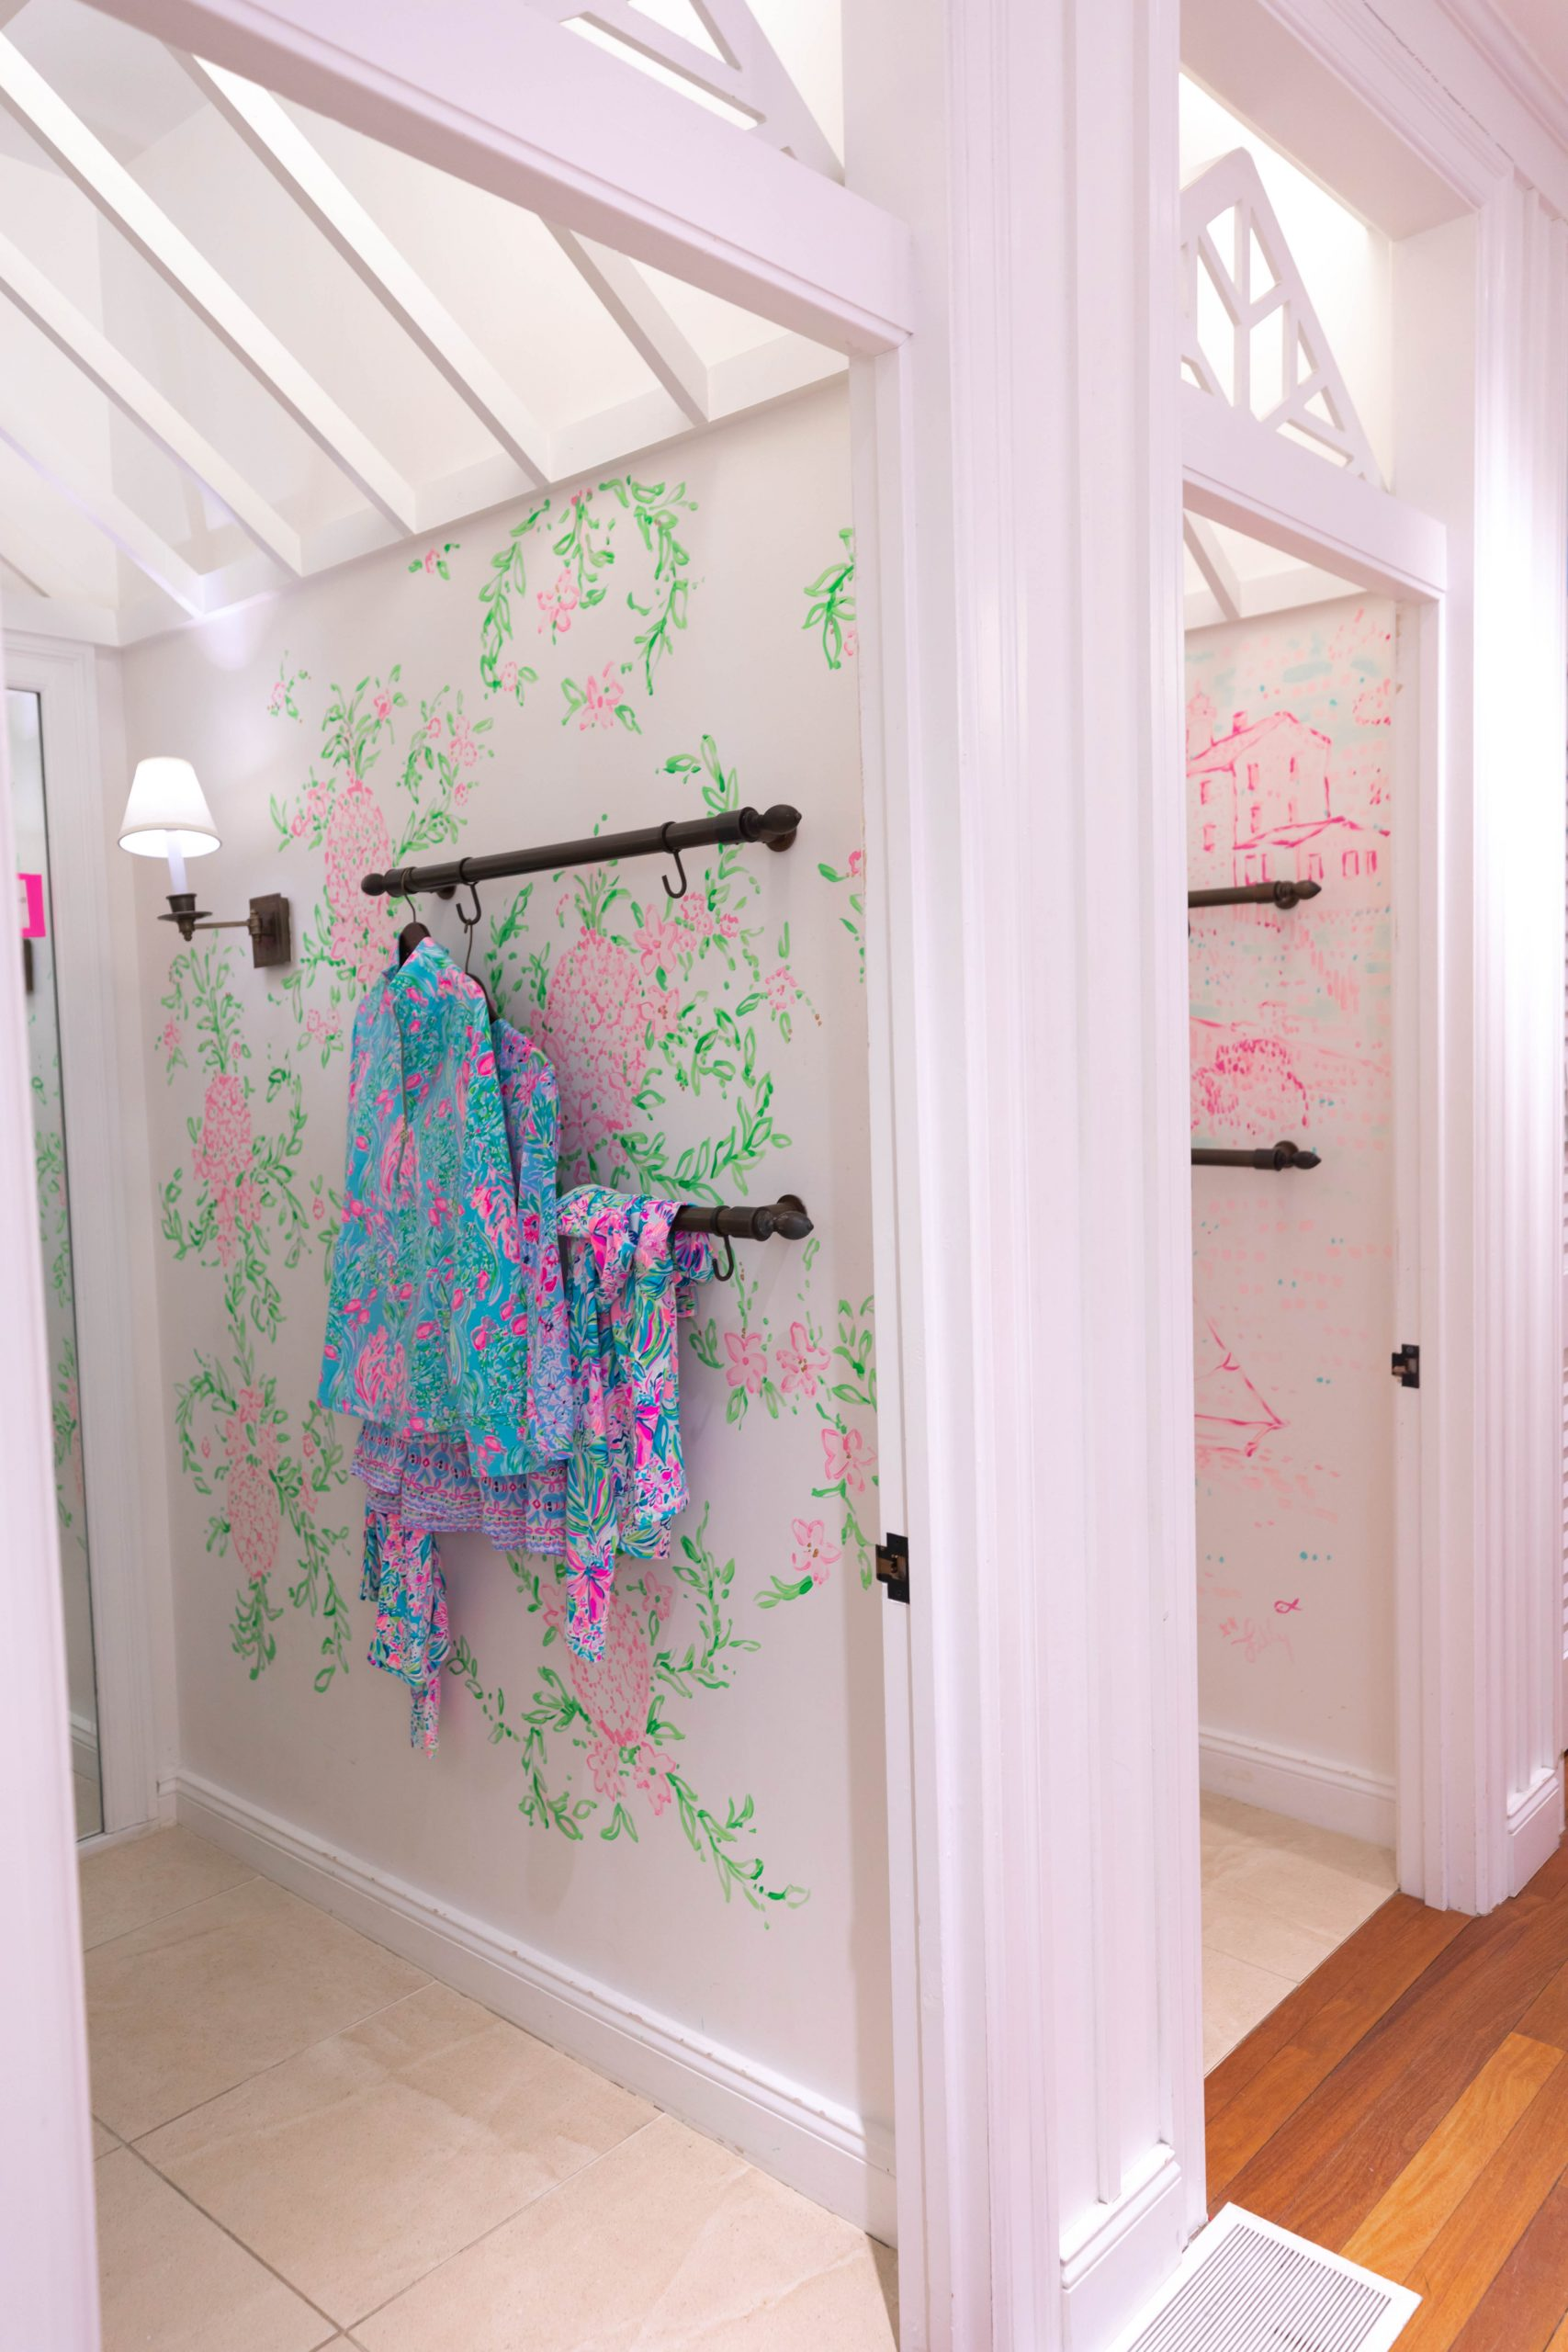 Lilly Pulitzer Greenwich Connecticut Dressing Room Mural by Annie Fairfax